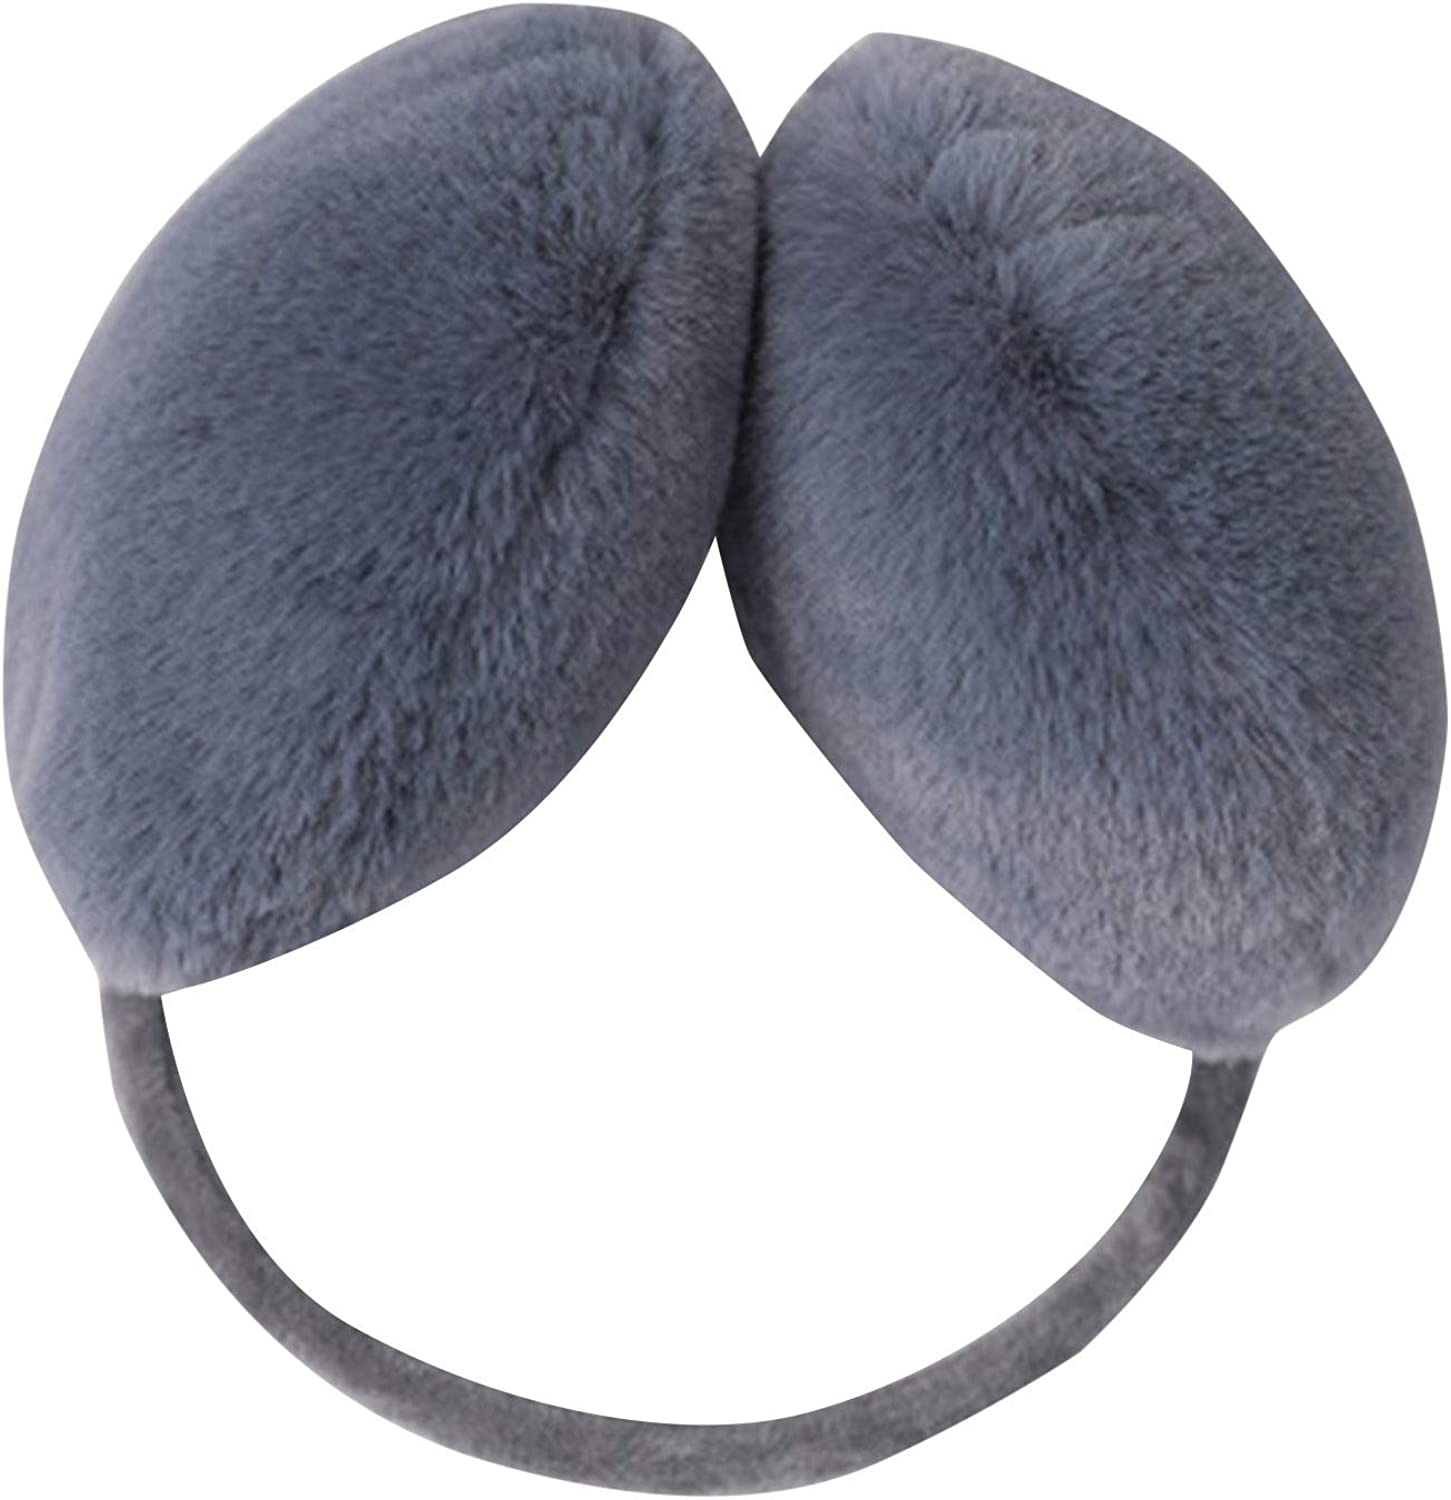 Ear Muffs for Womens/Mens - Winter Ear Warmers, Soft & Warm Earmuffs, Foldable Ear Covers for Cold Weather